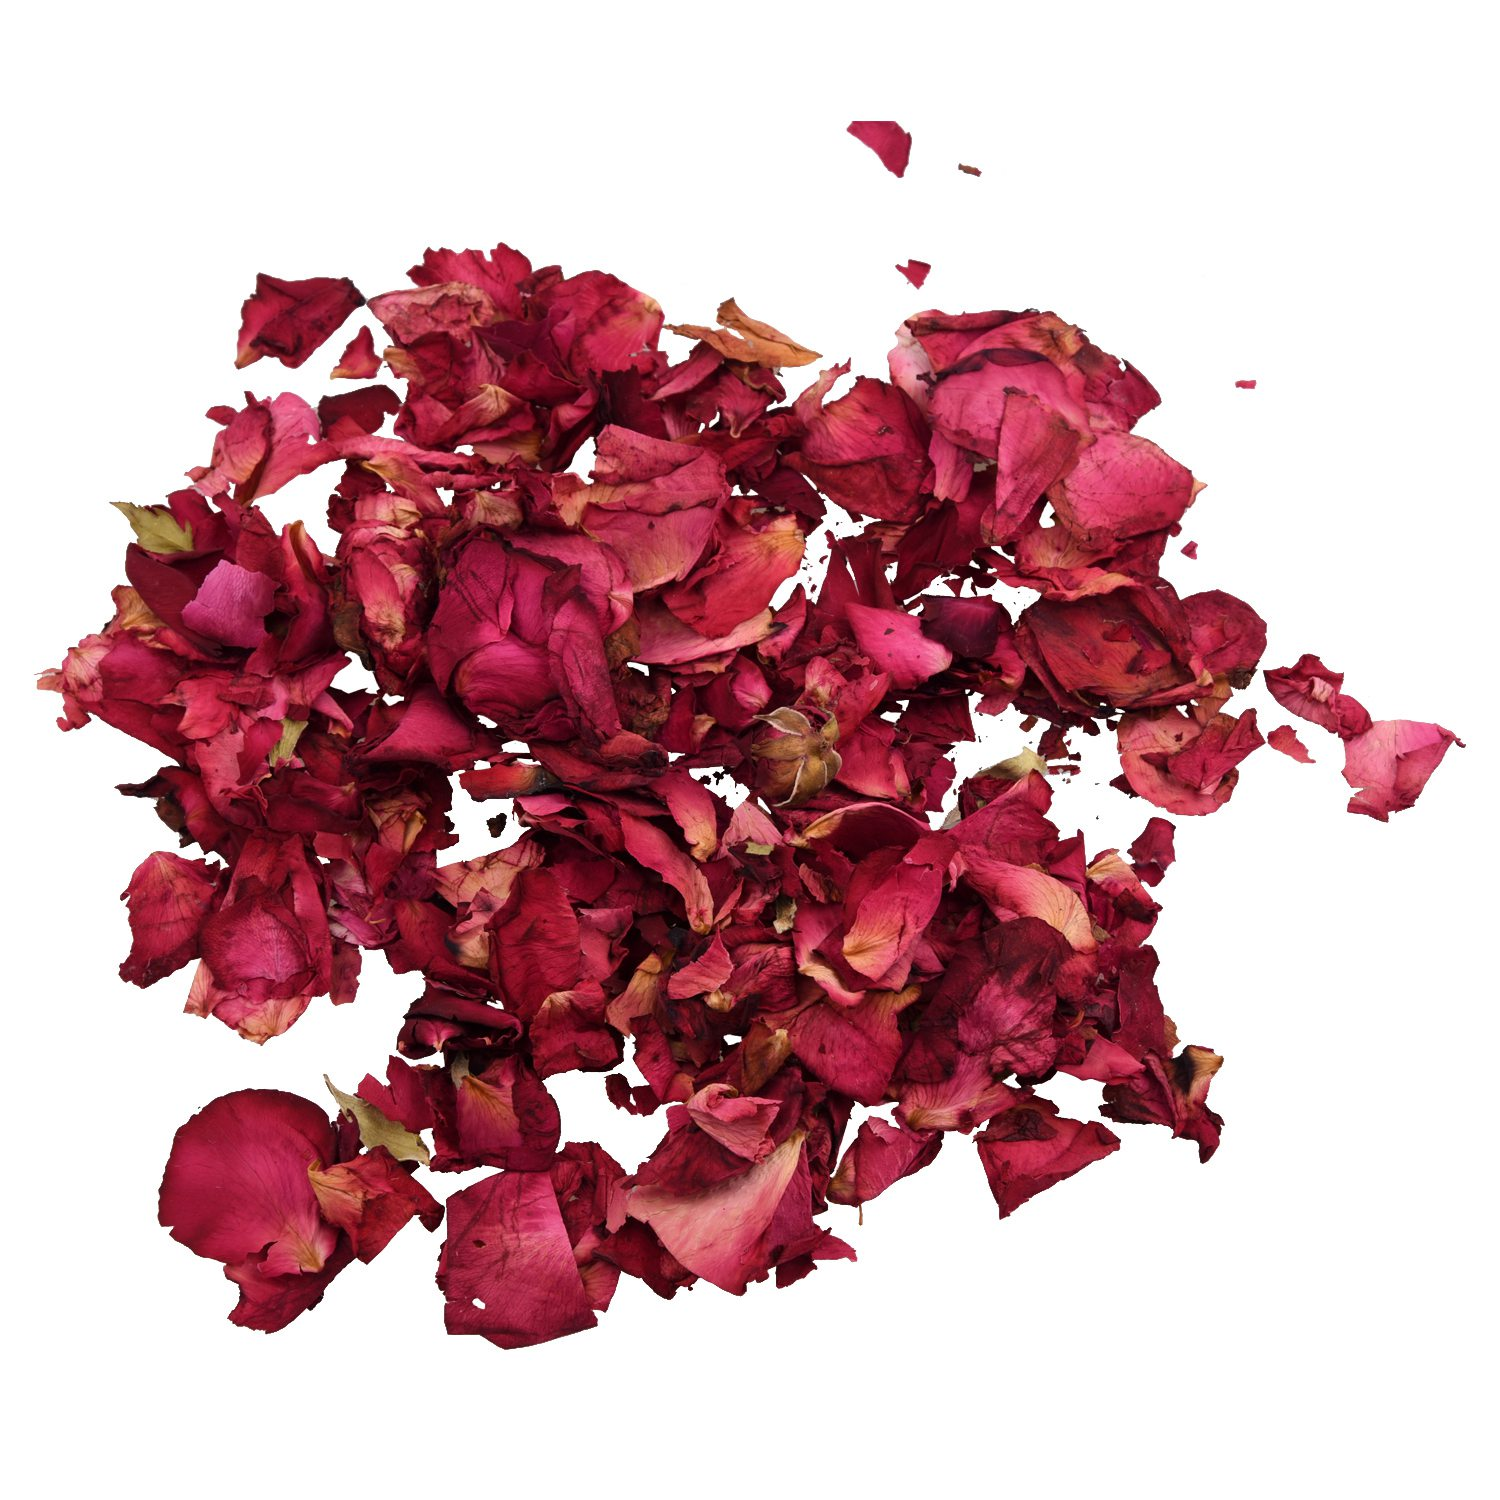 1 bag of dried rose petals flowers natural wedding table. Black Bedroom Furniture Sets. Home Design Ideas